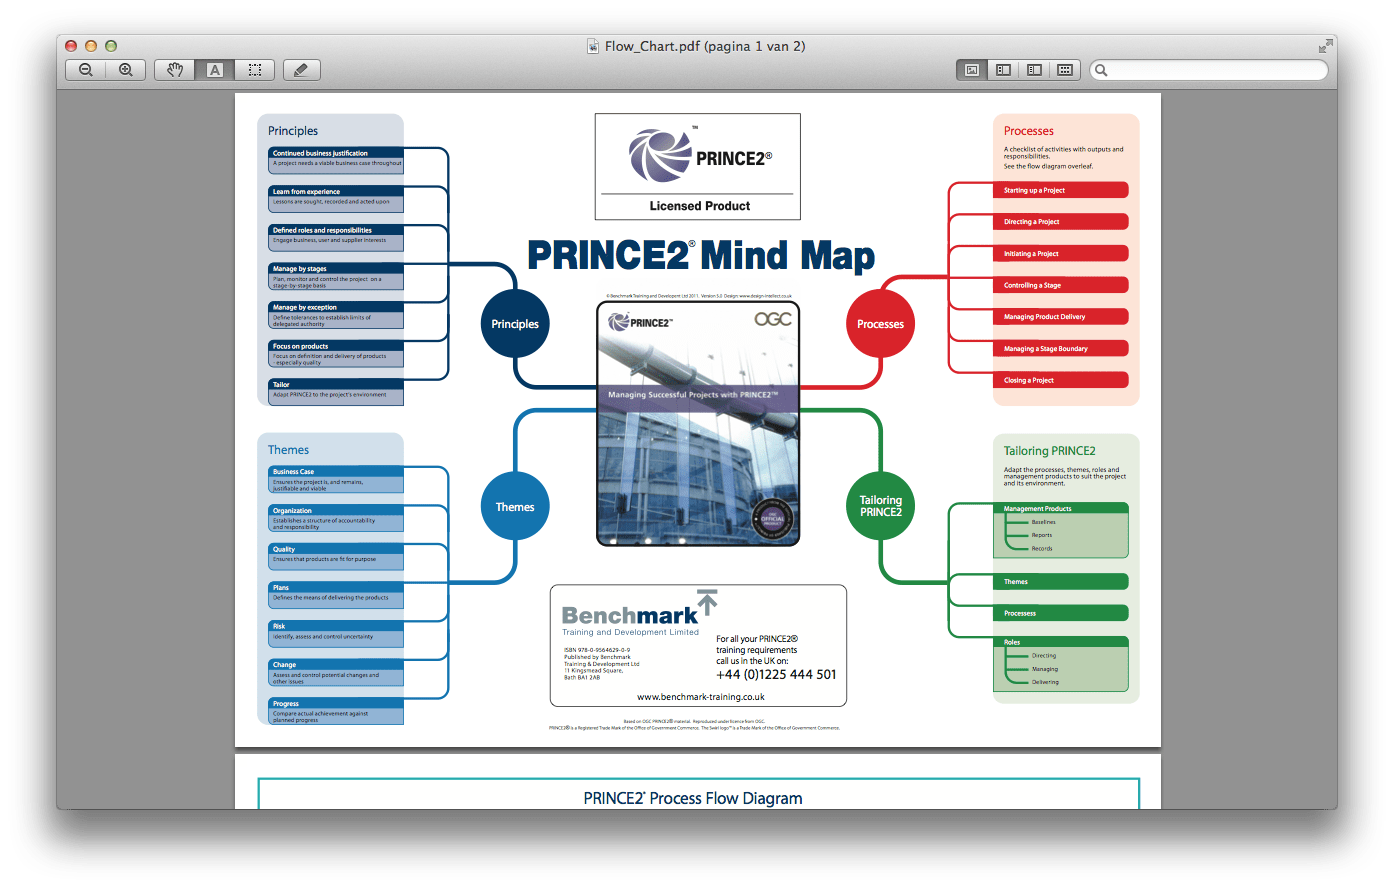 hight resolution of the prince2 mind map from benchmark com gives an overview of principles themes processes and tailoring no details so the added value is low